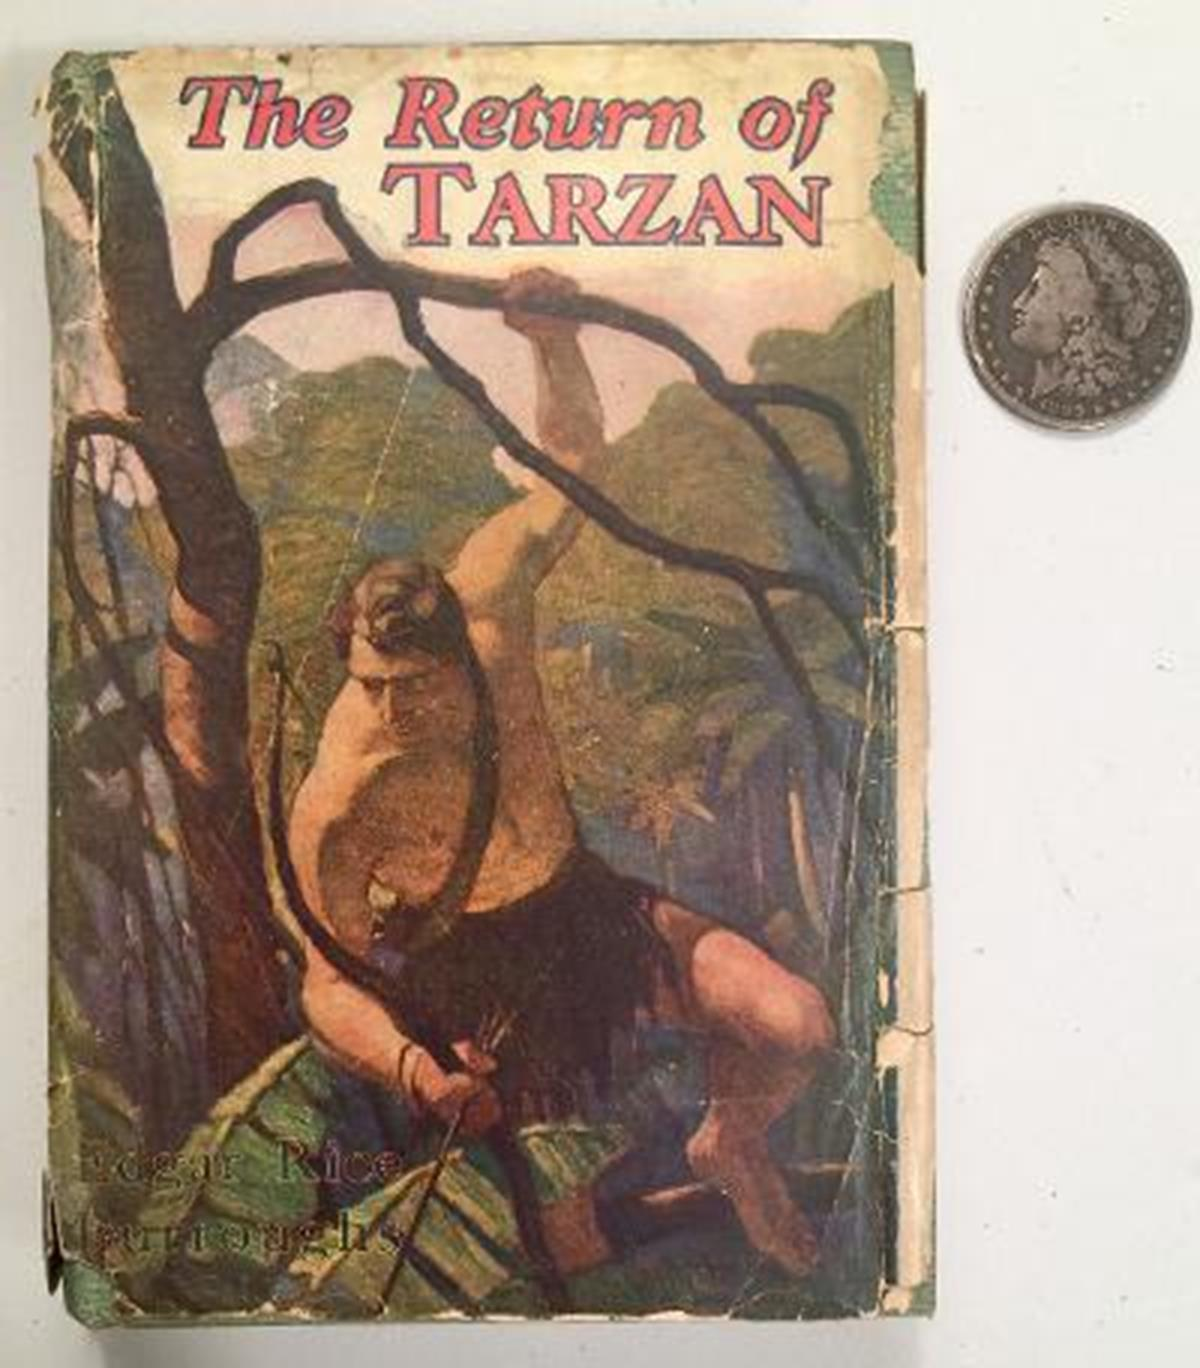 1915 The Return of Tarzan by Edgar Rice Burroughs w/ Dust Jacket Illustrated FIRST EDITION